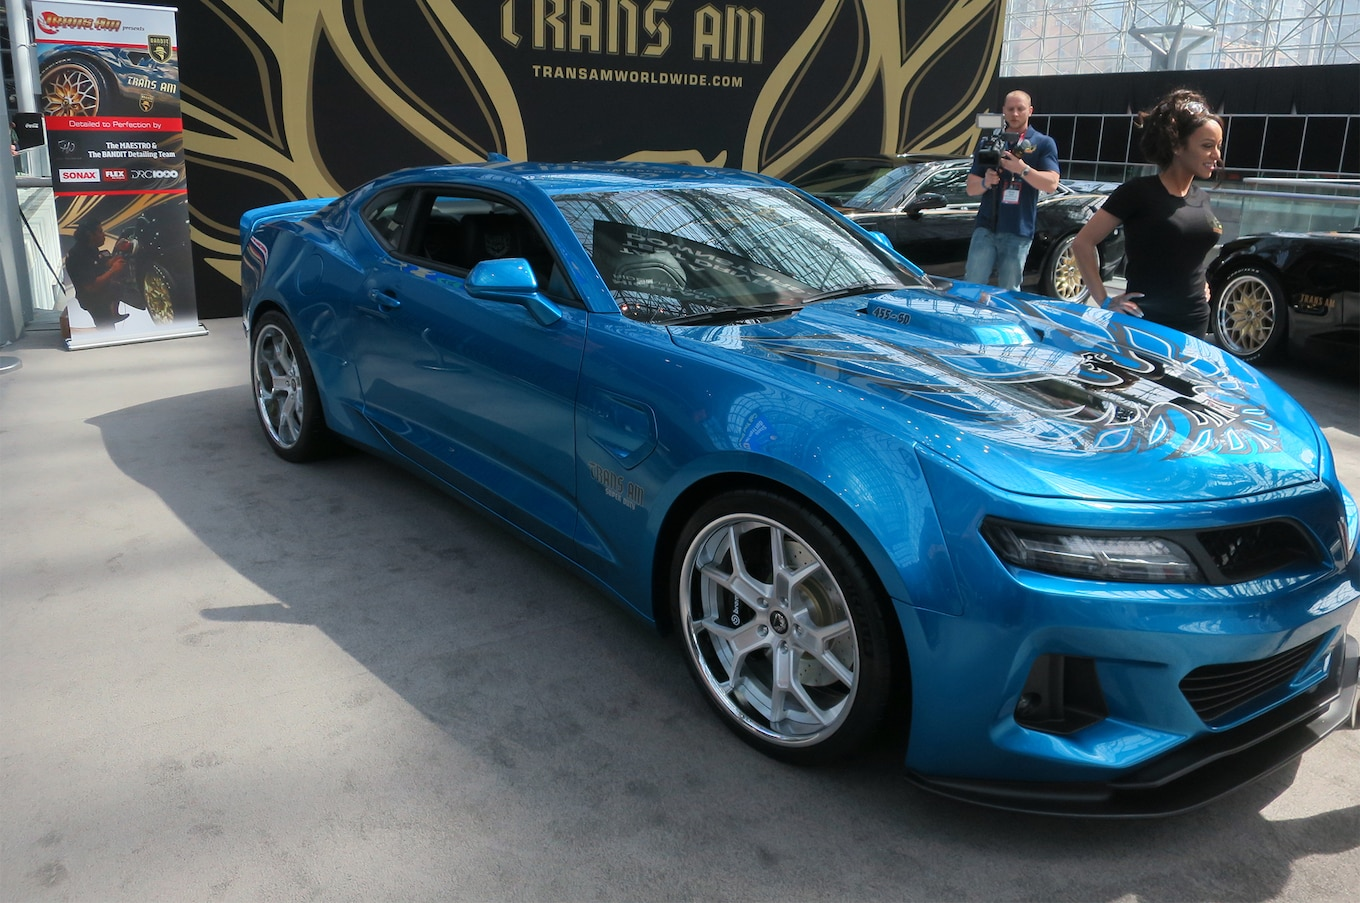 1000 HP 2017 Trans Am 455 Super Duty Bows In New York